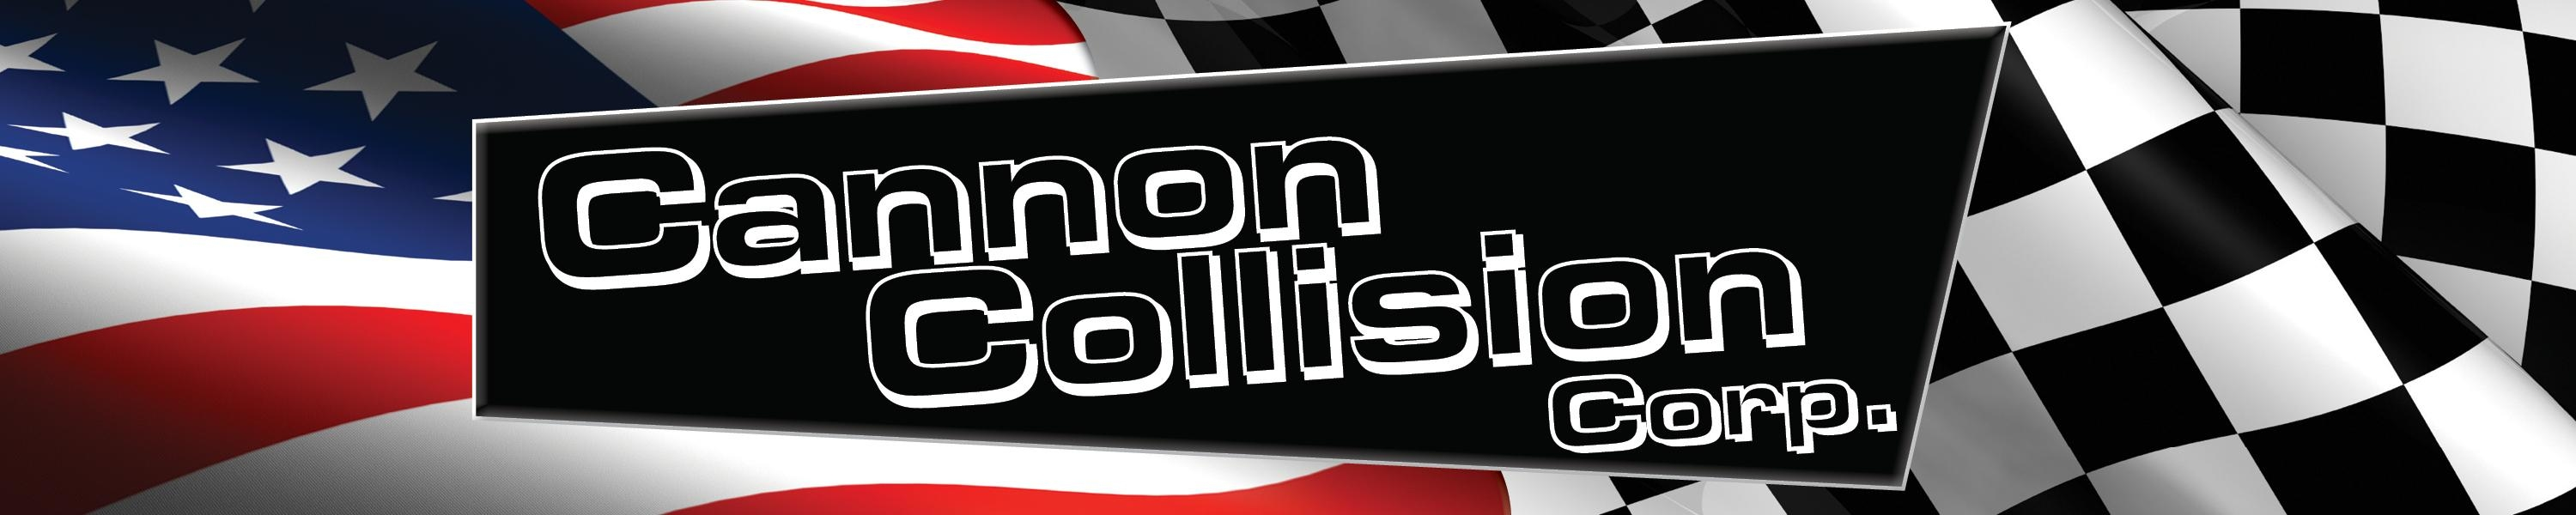 Cannon Collision Corp